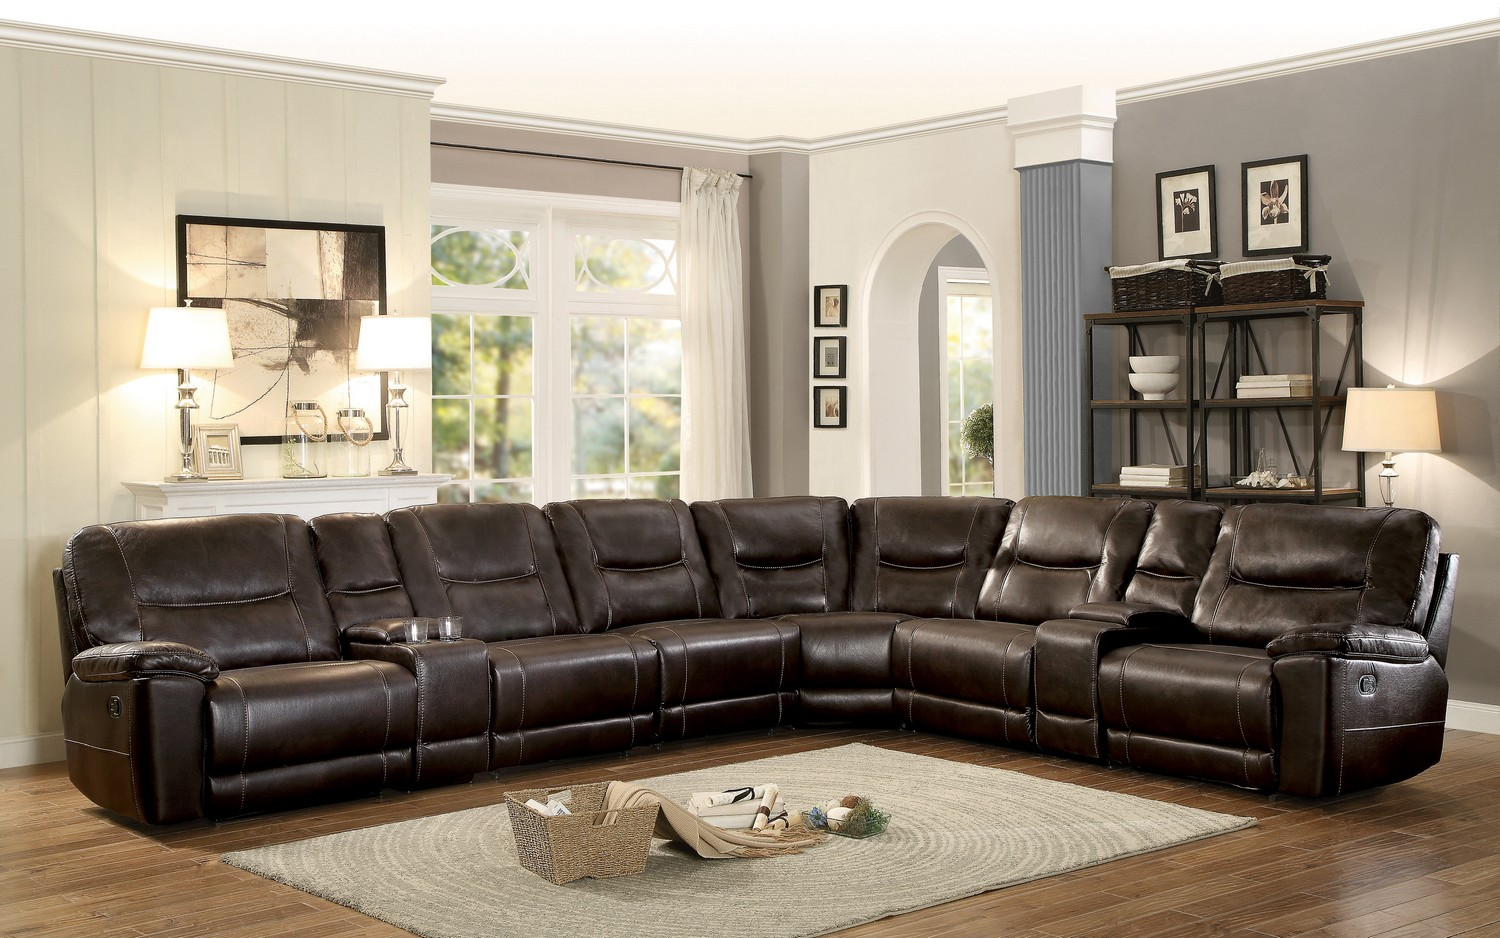 Homelegance Columbus Reclining Sectional Sofa Set A - Breathable Faux Leather - Dark Brown